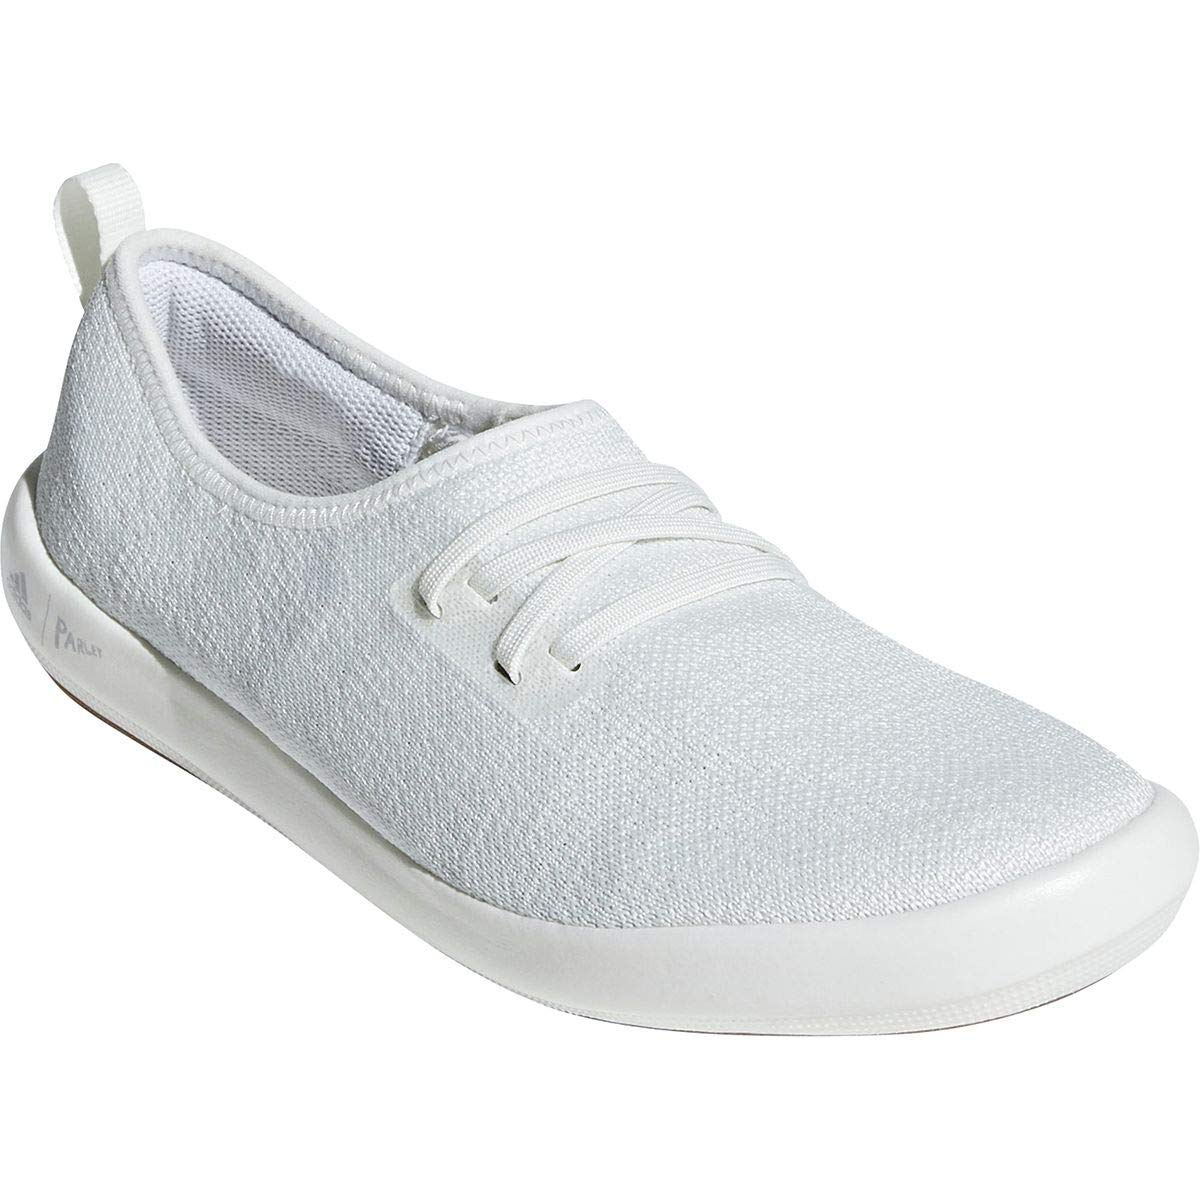 the best attitude 26fd2 0201d Amazon.com  adidas outdoor Terrex CC Boat Sleek Parley Water Shoe - Women s  Non-Dyed White Grey One, 7.5  Sports   Outdoors